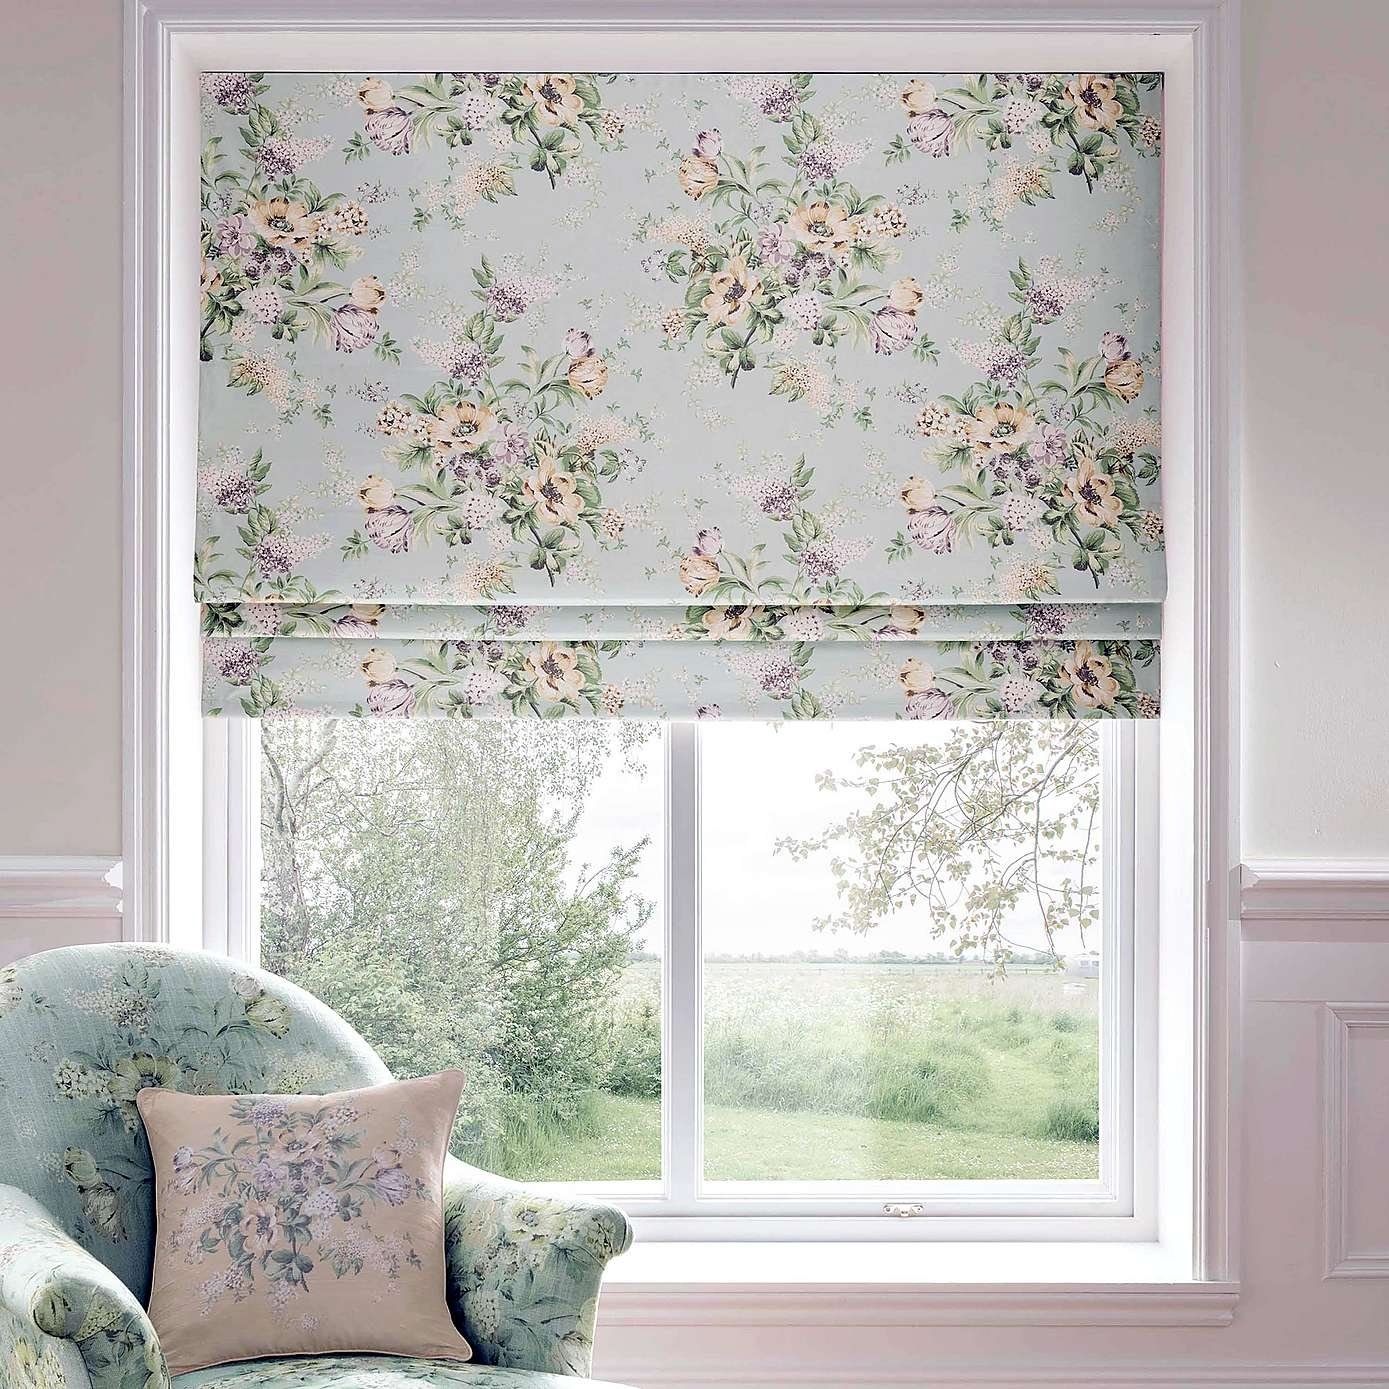 Dorma Brympton Duck Egg Roman Blind Dunelm Curtains Pertaining To Blue Roman Blinds (Image 13 of 15)